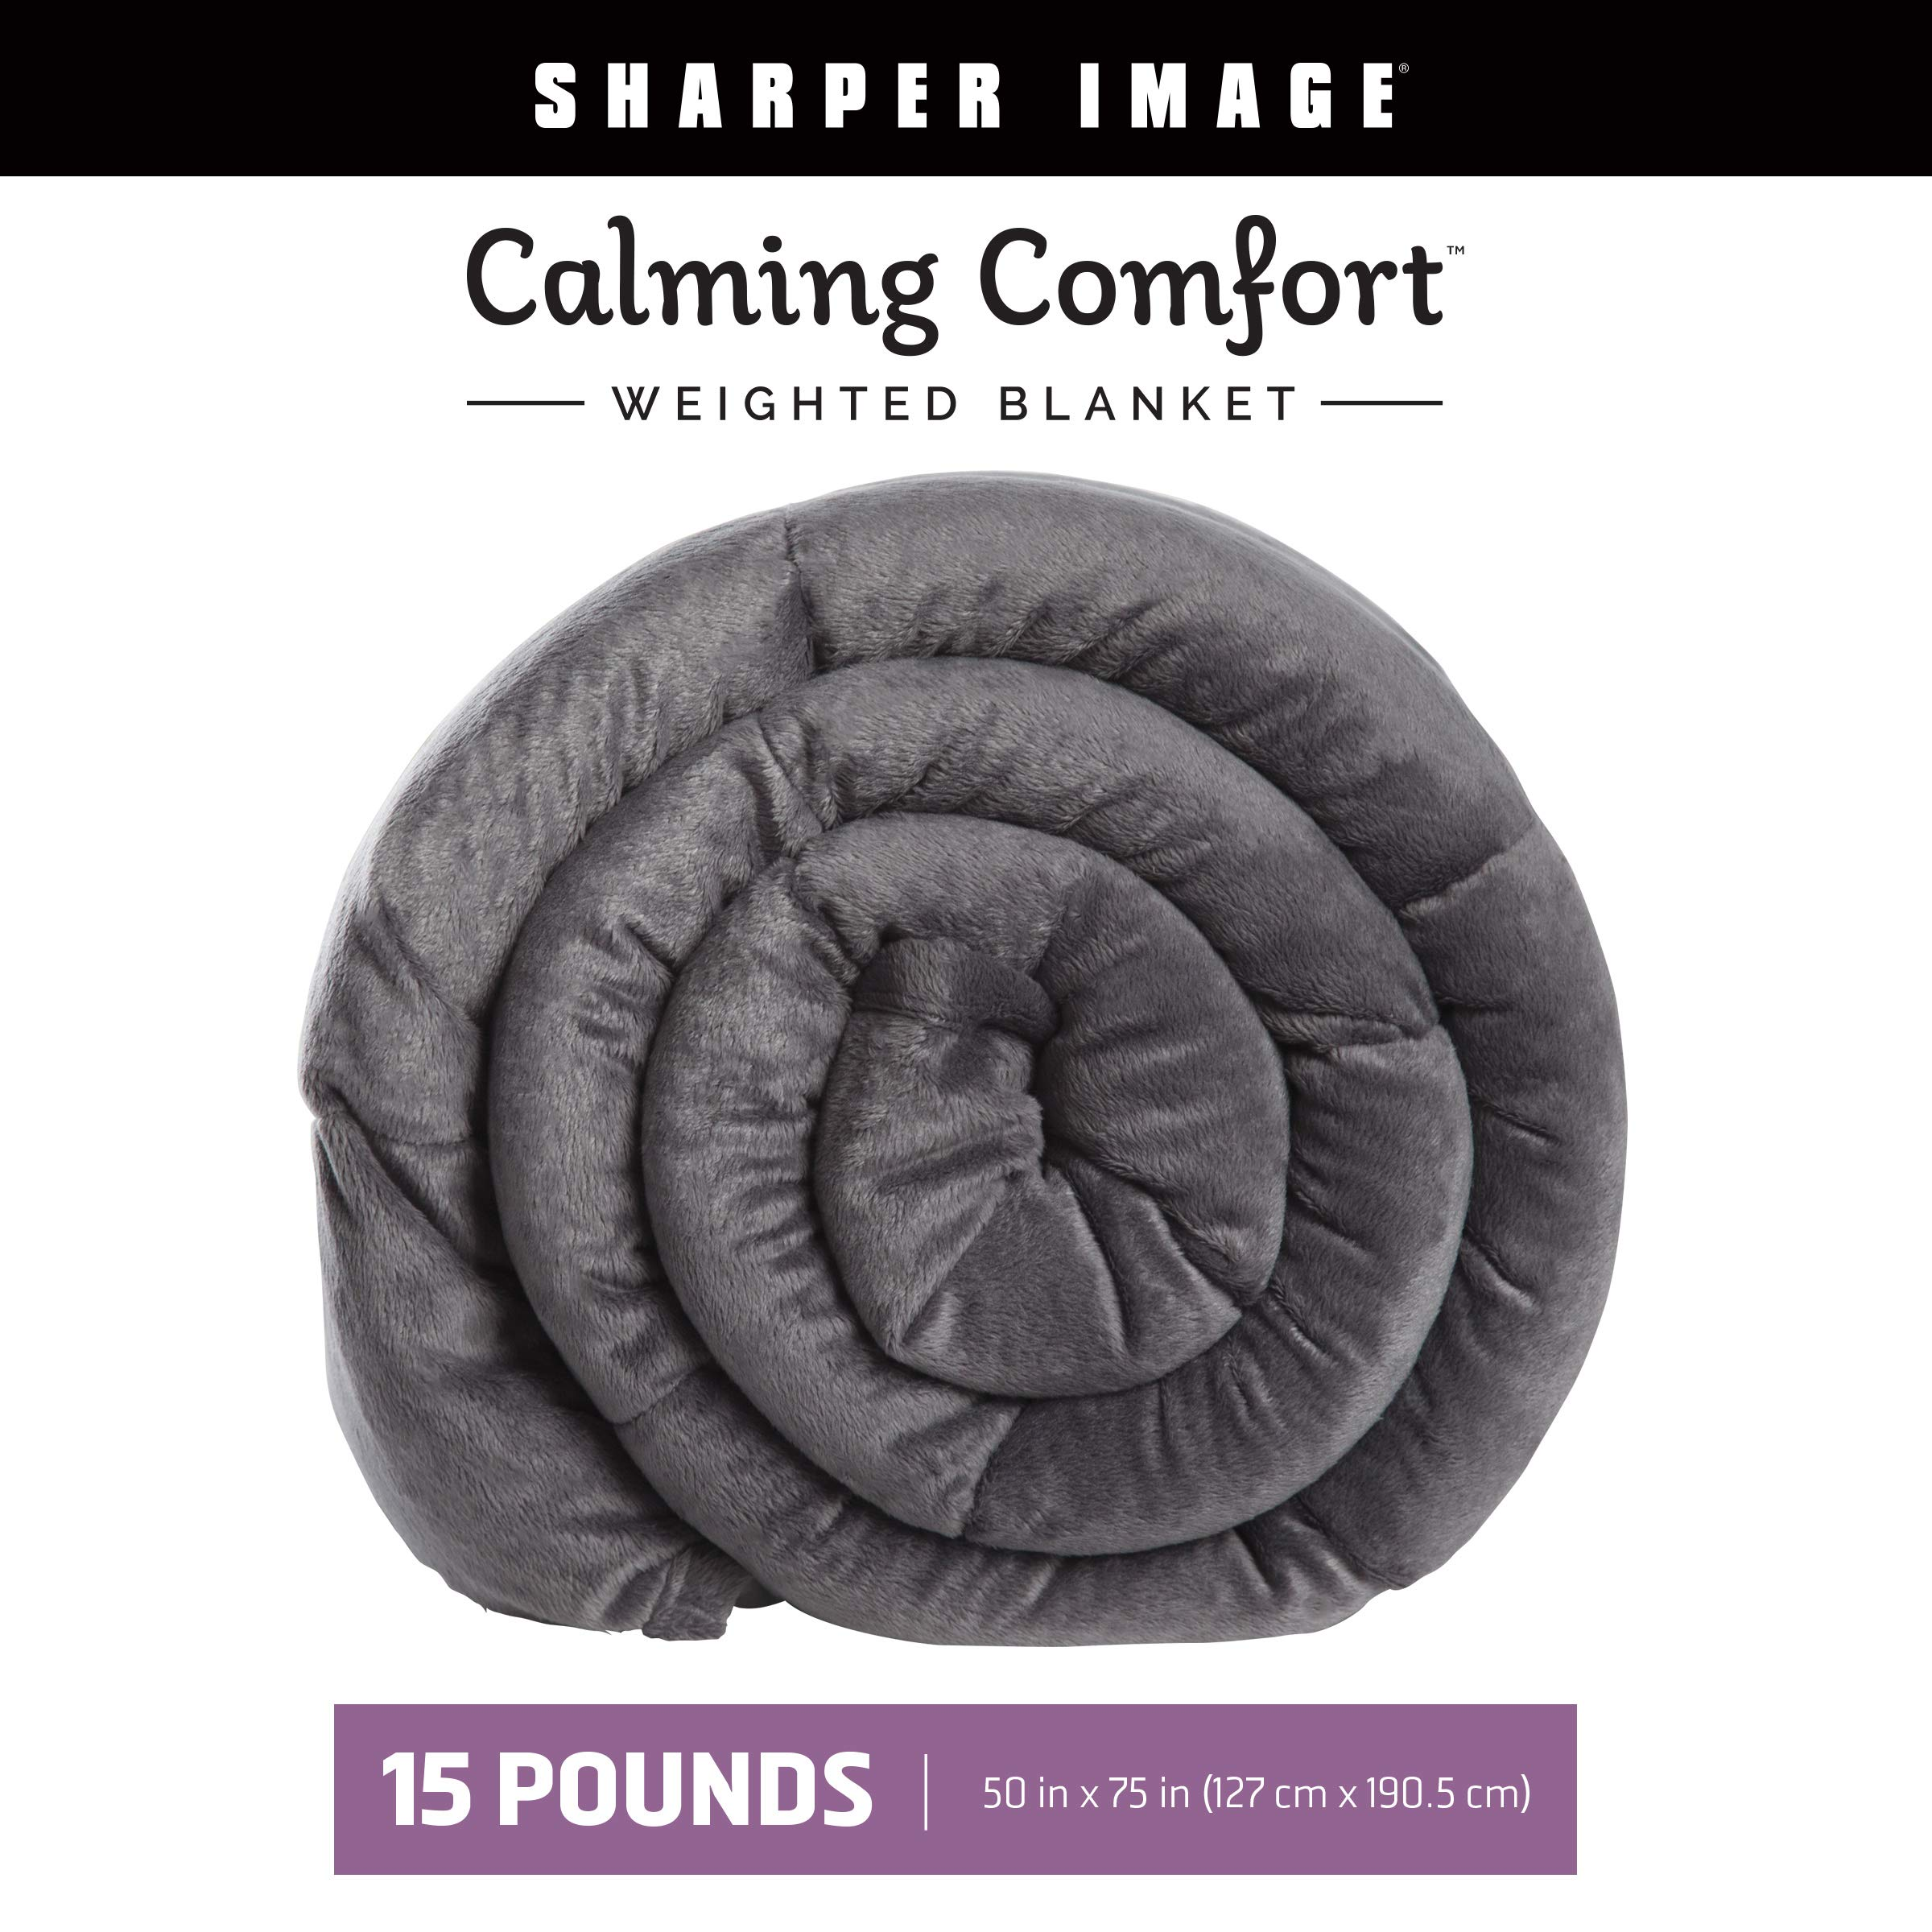 Calming Comfort Weighted Blanket by Sharper Image- A Heavy Blanket| 15 lb. 50'' x 75'', Grey